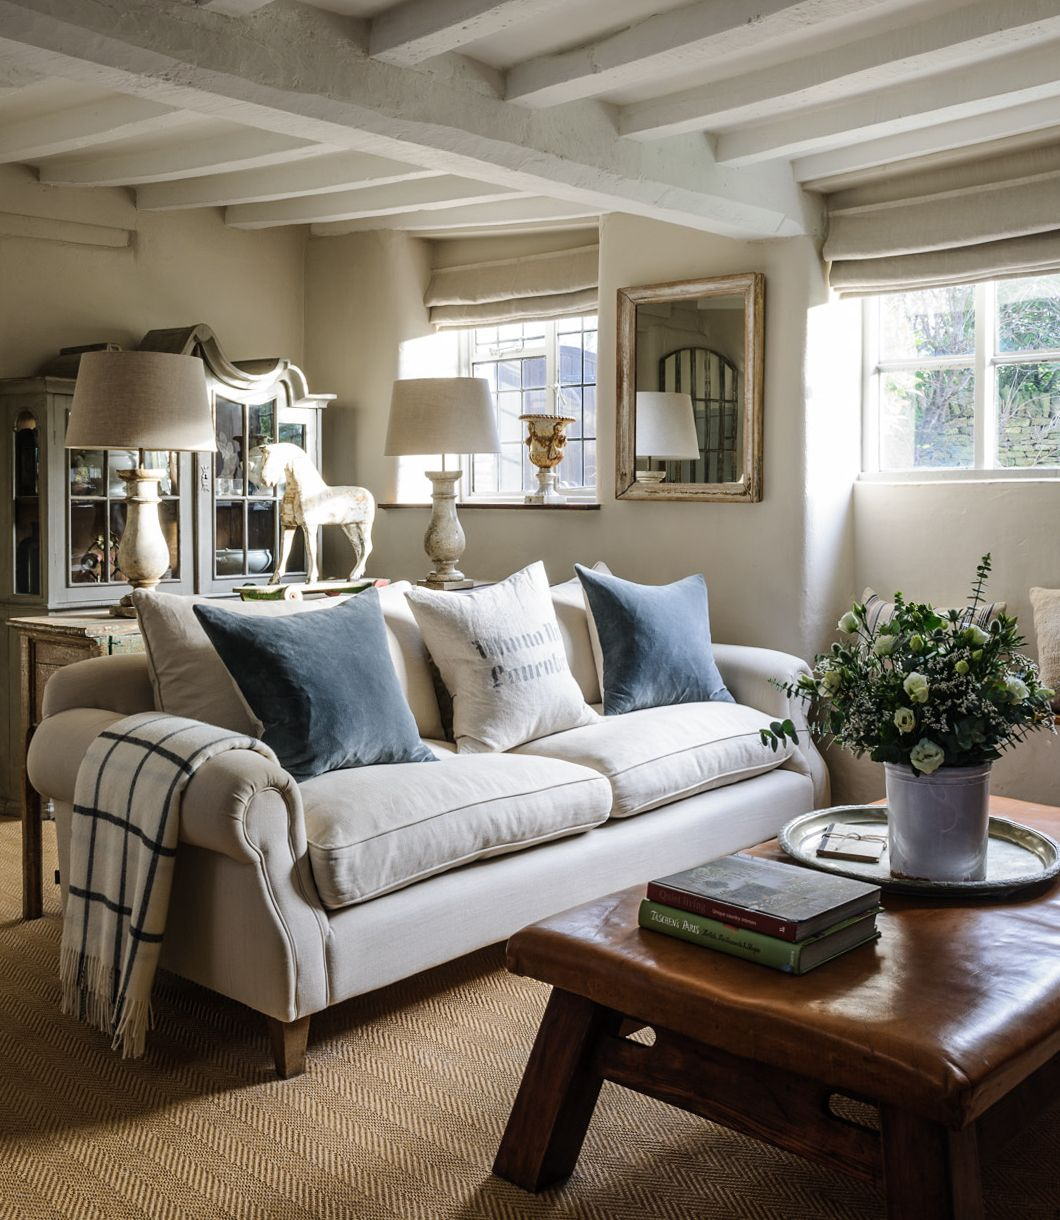 Homes U0026 Antiques. Jason Ingram. Soft Corners, Chalky Shades On The Walls  And. Cottage Living RoomsCountry ...